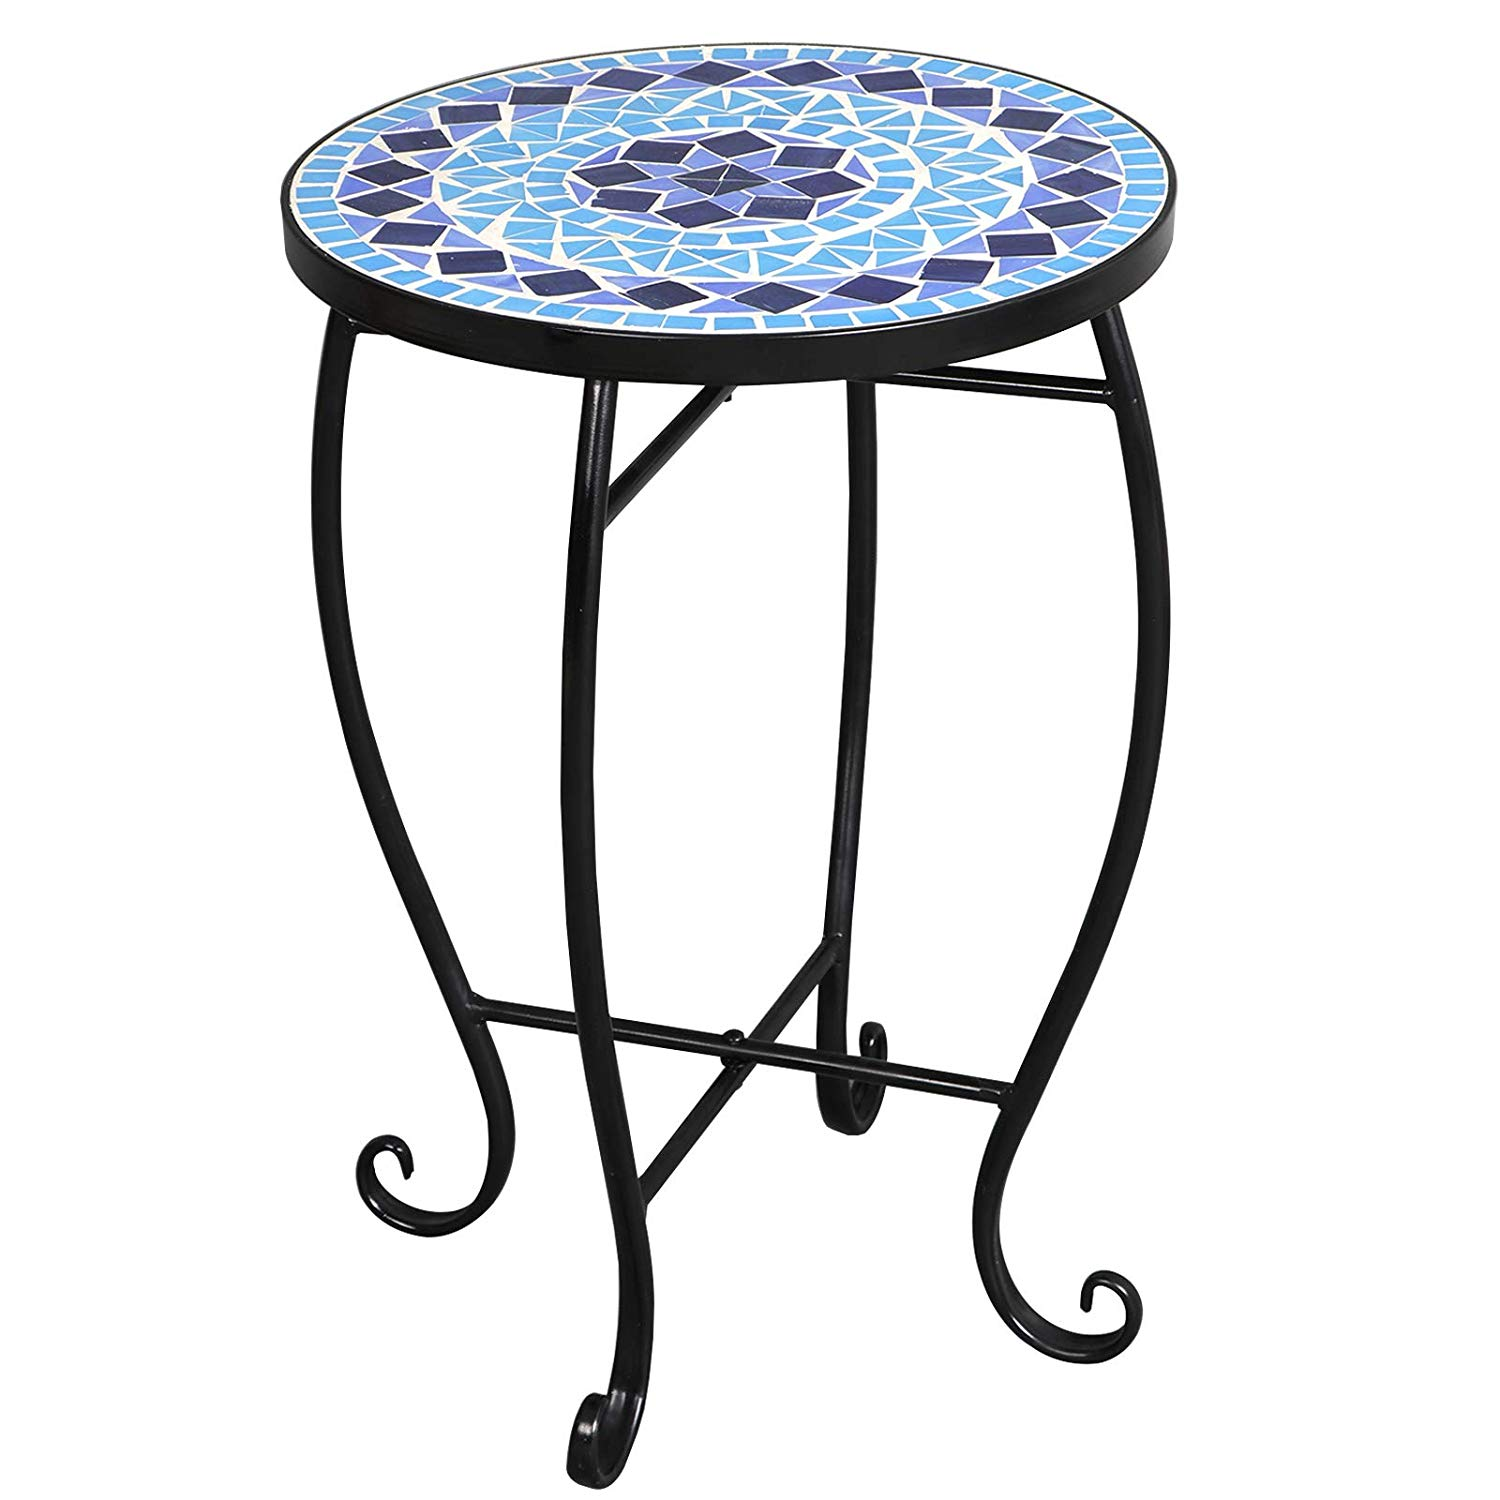 mosaic round side table plant stand floor flower pots outdoor rack planter holder decor potted containers shelf display for home patio garden indoor iron small accent tables